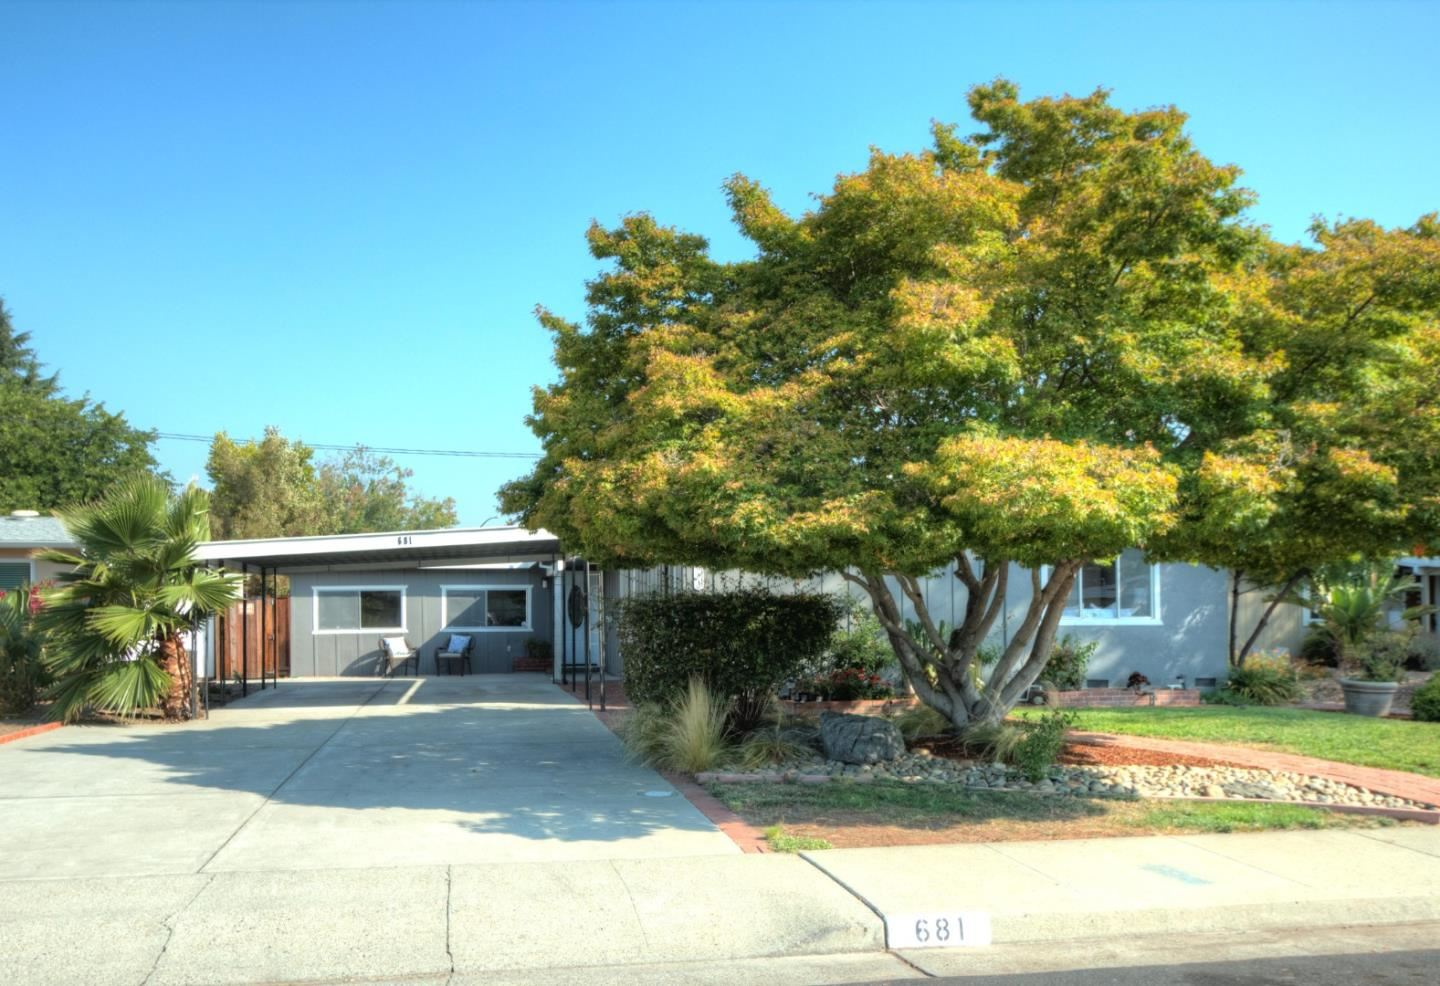 Photo for 681 Buddlawn Way, CAMPBELL, CA 95008 (MLS # ML81861221)